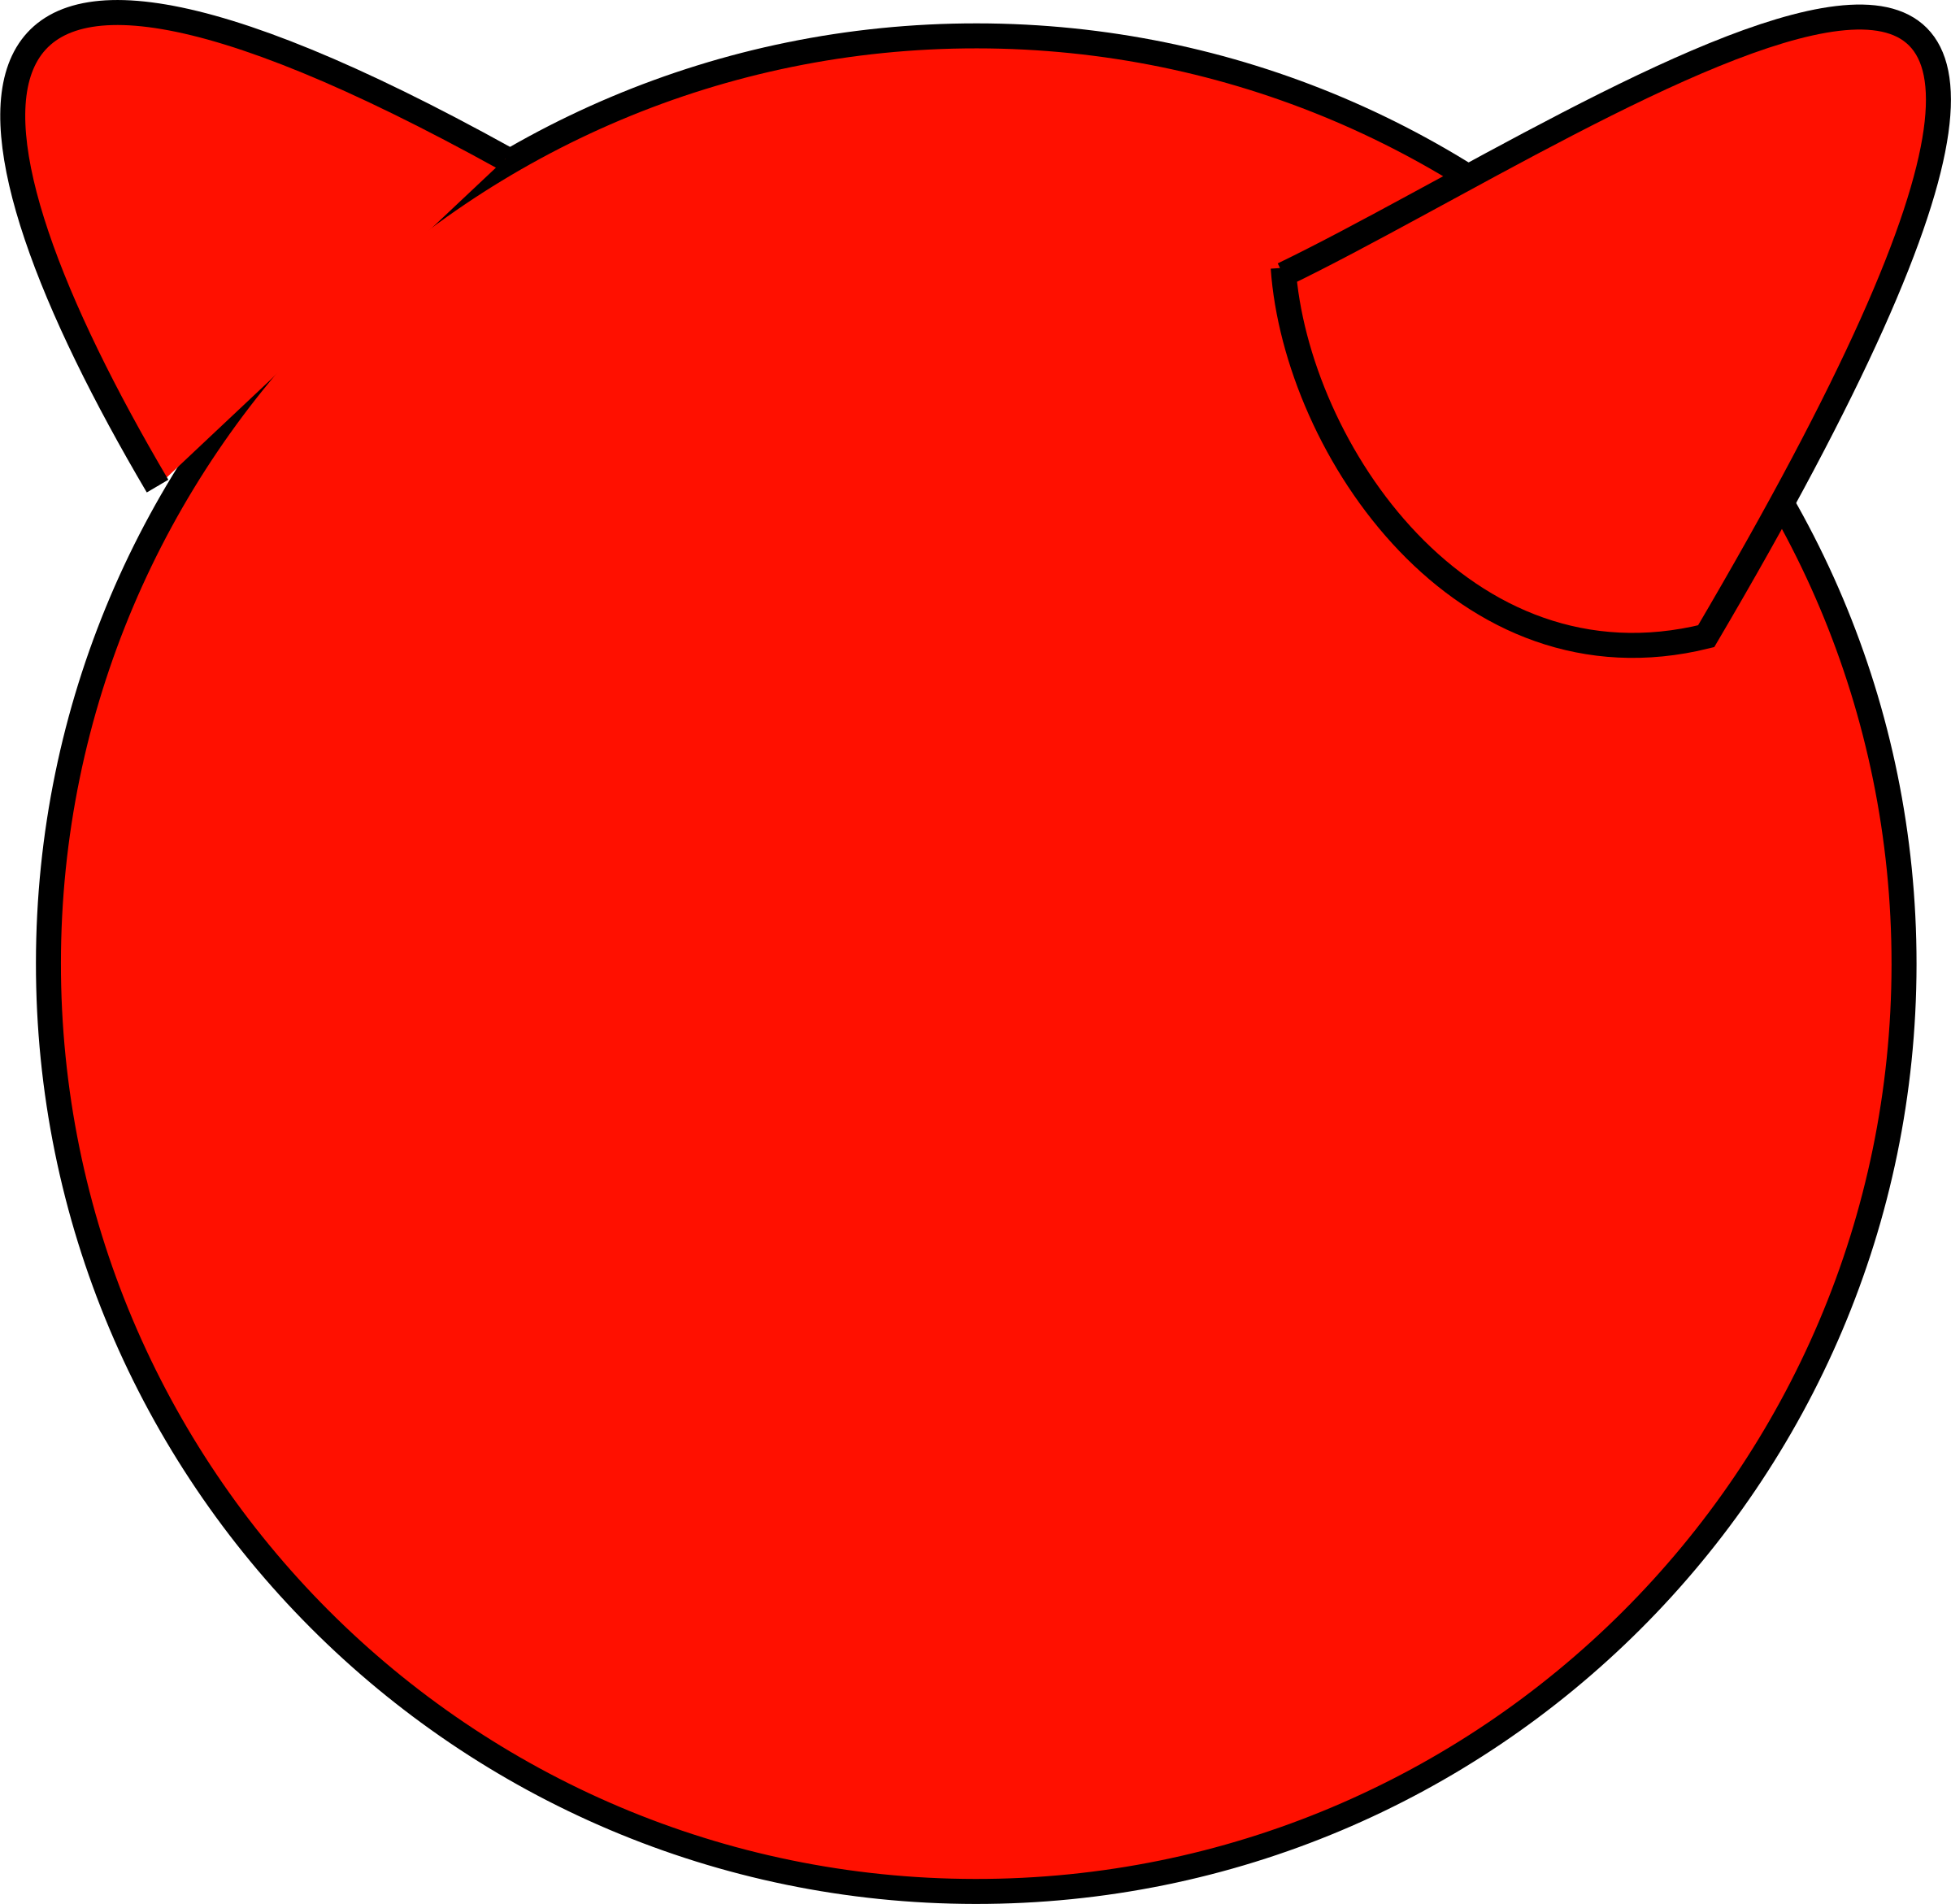 FreeBSD Demon Logo 2d by notKlaatu